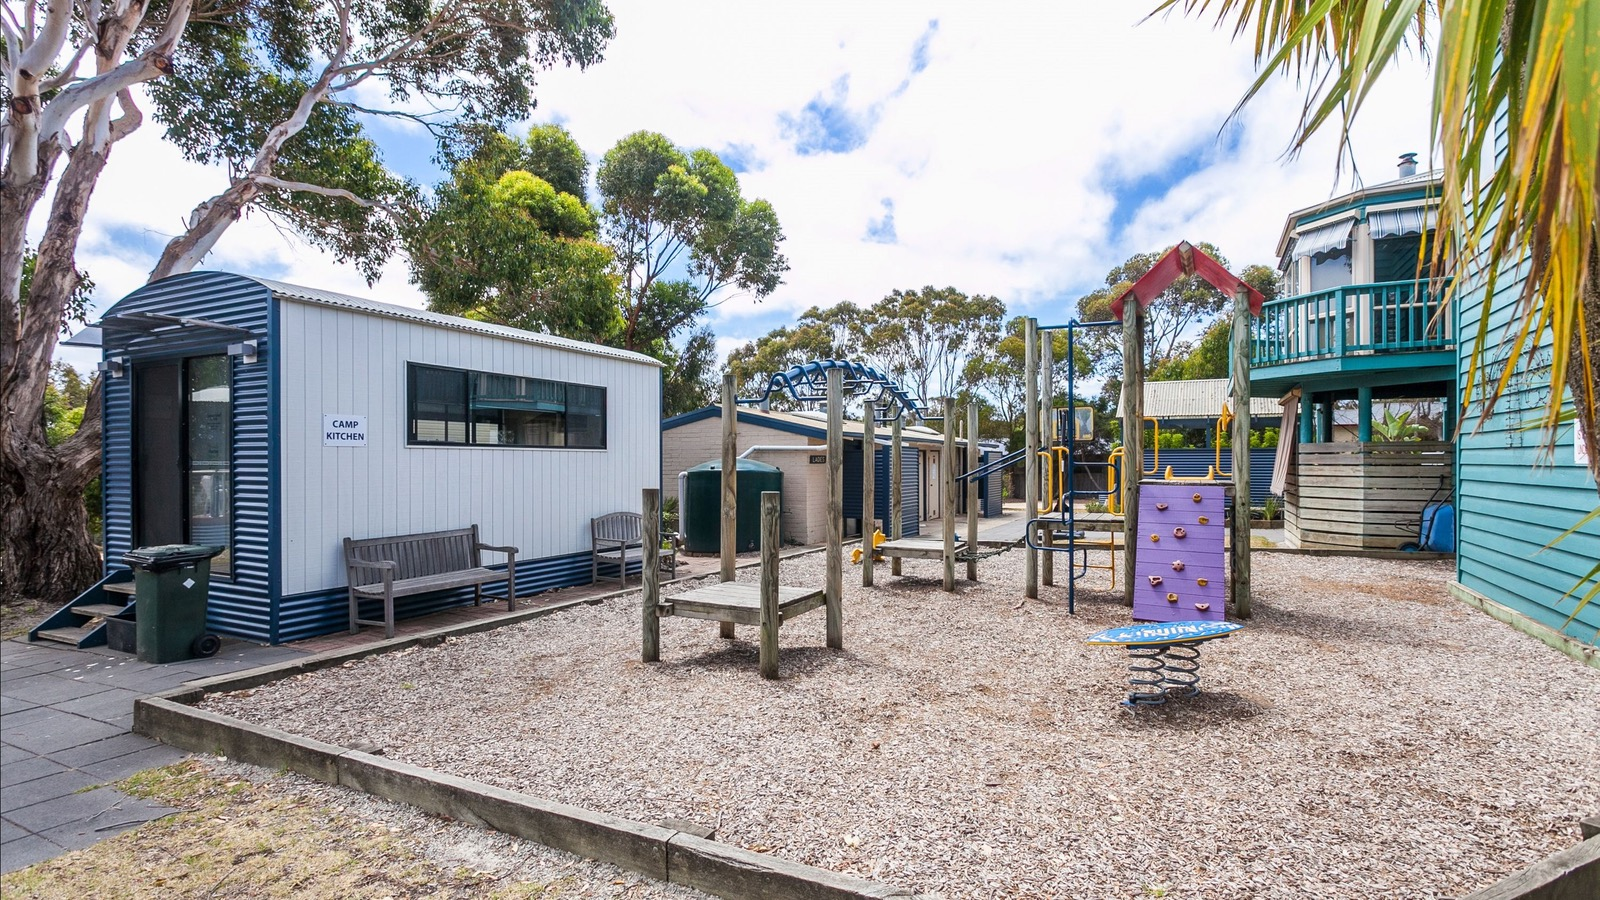 Playground, Camp Kitchen, Amenities, Spa and Office Building